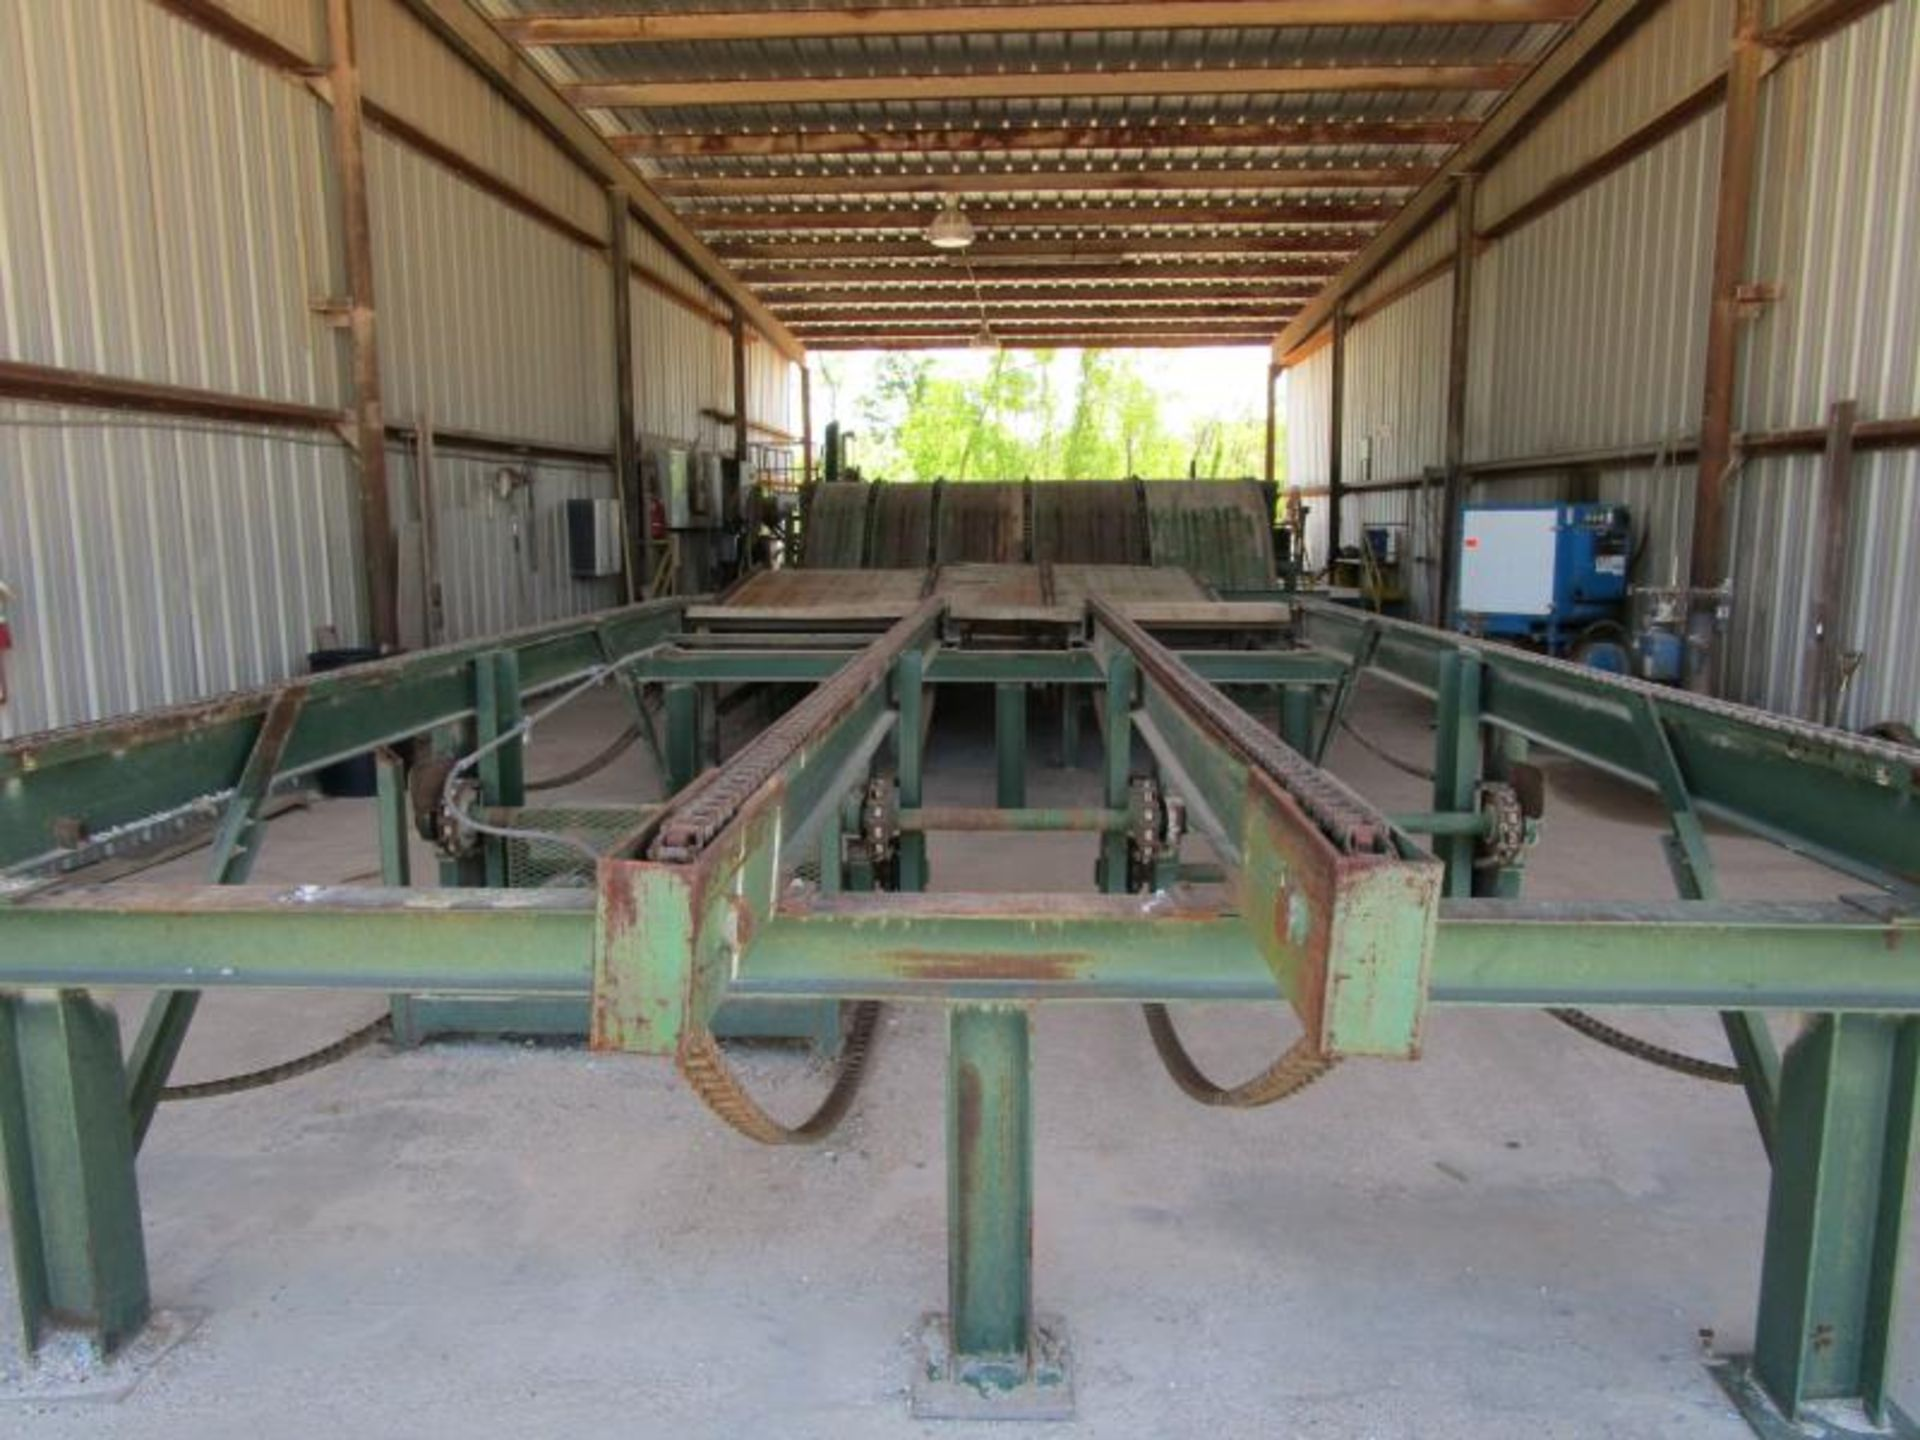 Lot 21 - Board Chain Deck/ Stacker, 50,000 Board Feet/ per day with custom controller controls/ Automation,